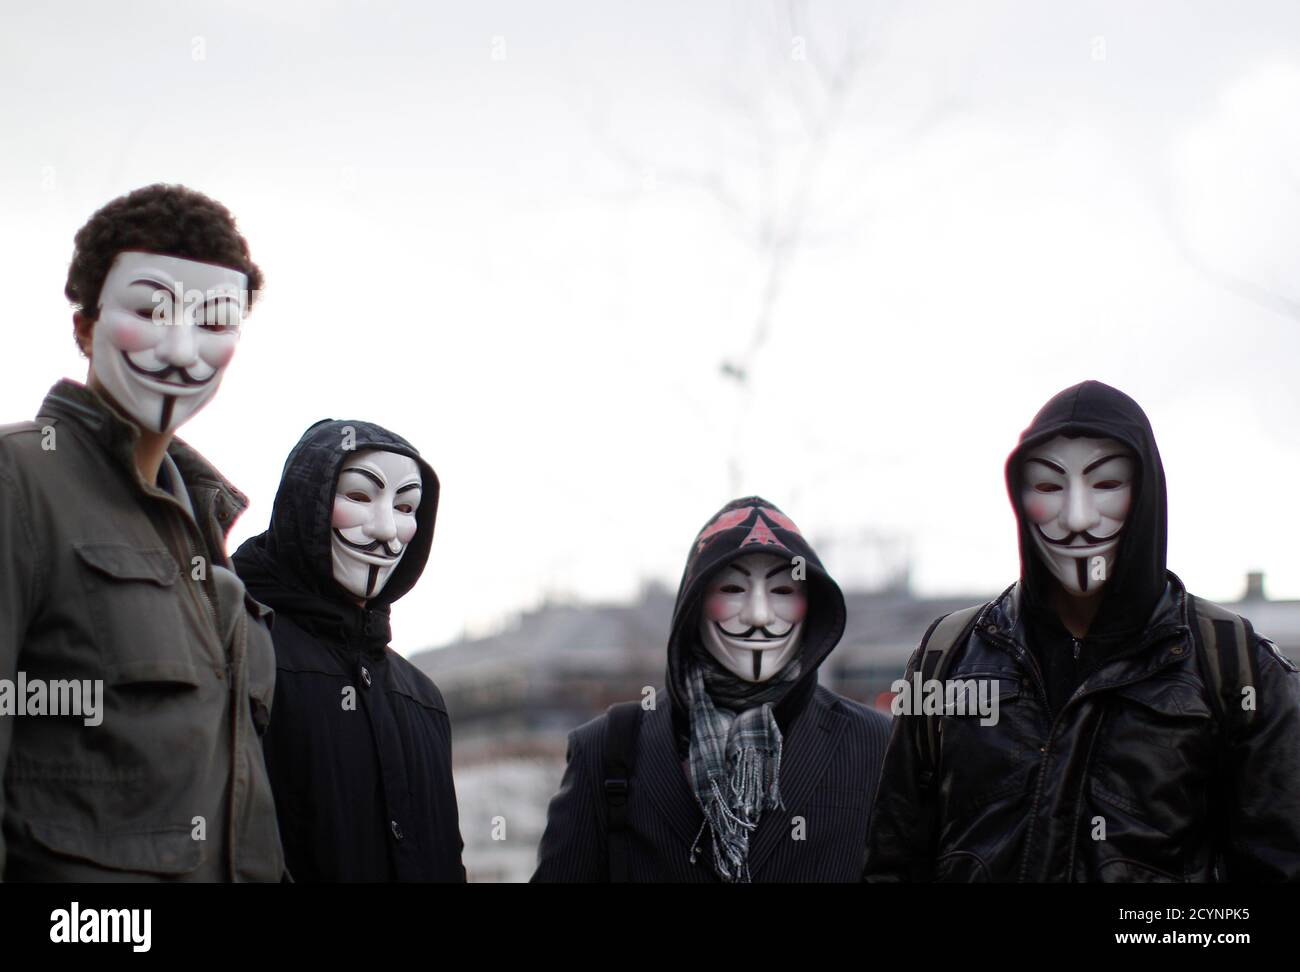 """Protesters wearing Guy Fawkes masks, made popular by the graphic novel """"V for Vendetta"""", take part in a demonstration against ACTA (Anti-Counterfeiting Trade Agreement) in Vienna, February 25, 2012.  Protesters fear that ACTA, which aims to cut trademark theft and other online piracy, will curtail freedom of expression, curb their freedom to download movies and music for free and encourage Internet surveillance.   REUTERS/Lisi Niesner (AUSTRIA - Tags: POLITICS CIVIL UNREST) Foto de stock"""